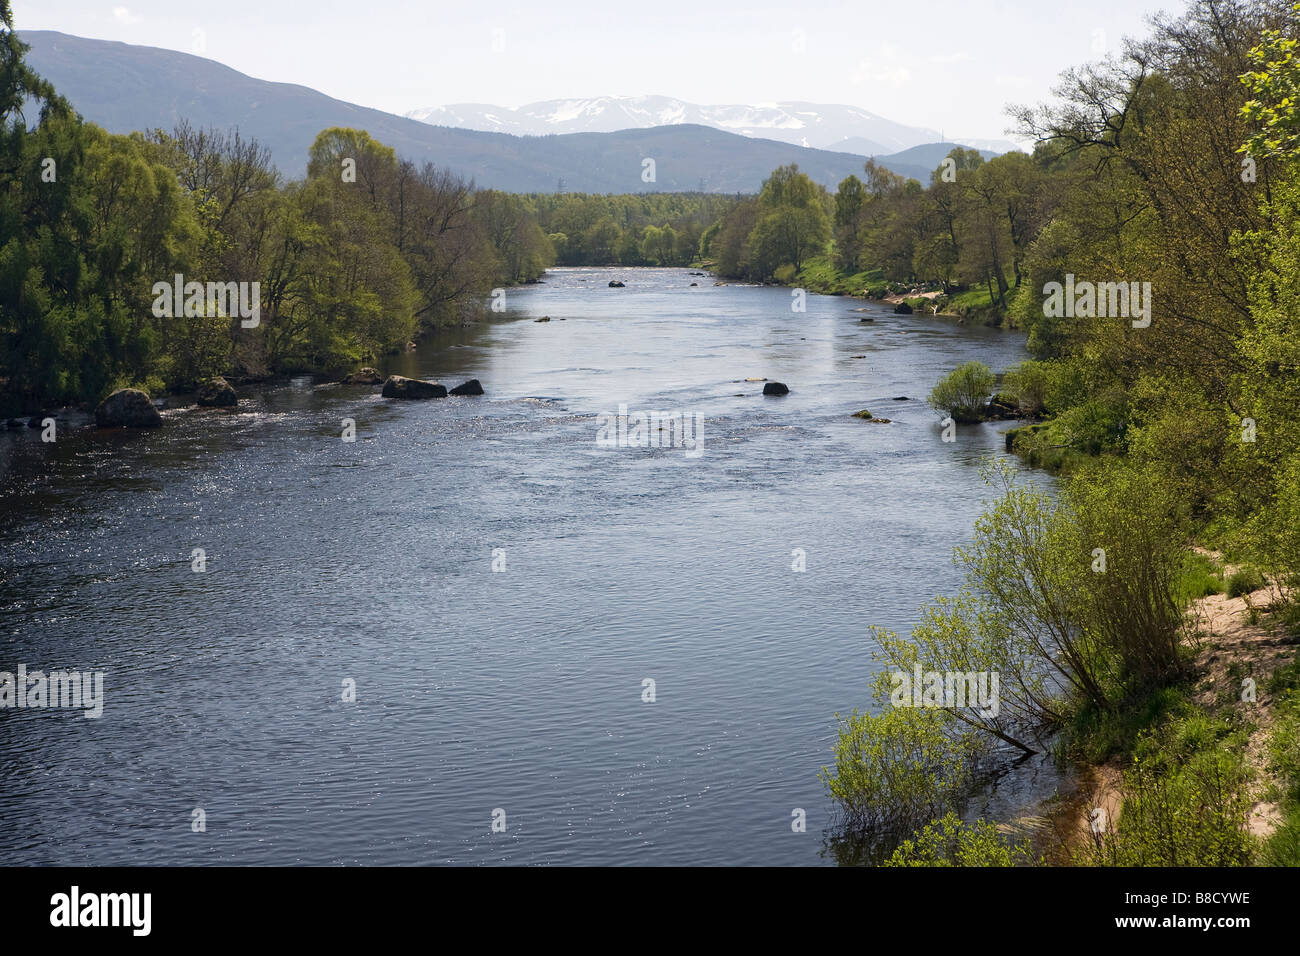 View down River Spey, towards Cairngorms National Park, from the Old Spey Bridge, Grantown-on-Spey, Scottish Highlands, - Stock Image